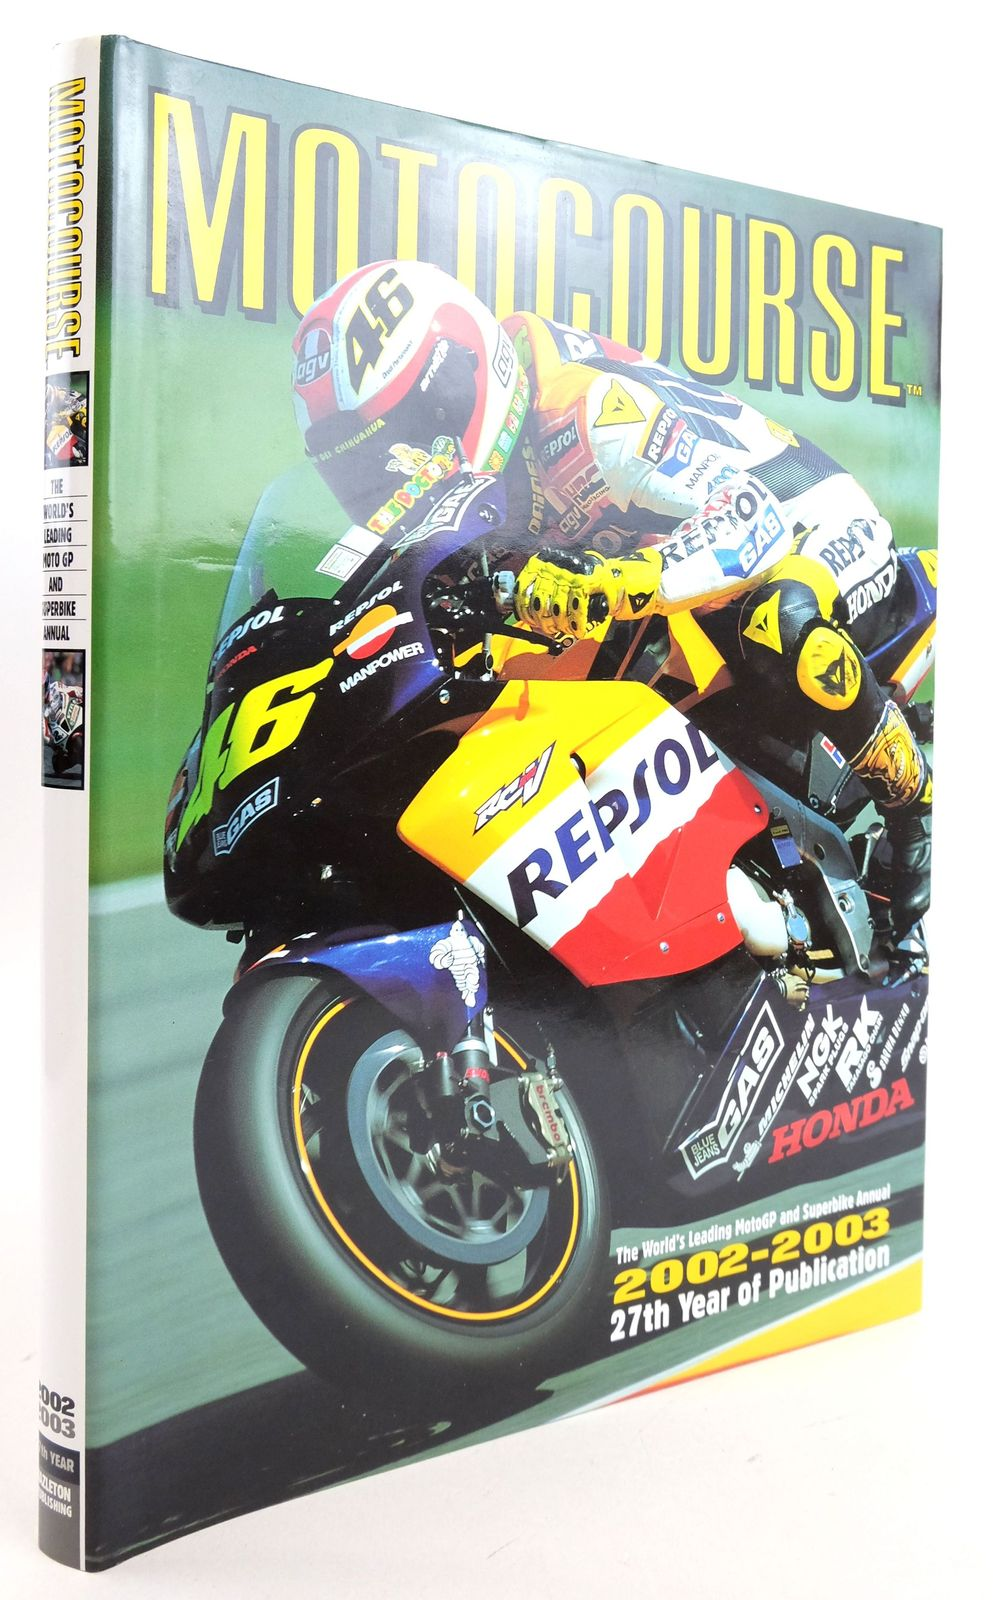 Photo of MOTOCOURSE 2002-2003 published by Hazleton Publishing (STOCK CODE: 1819876)  for sale by Stella & Rose's Books